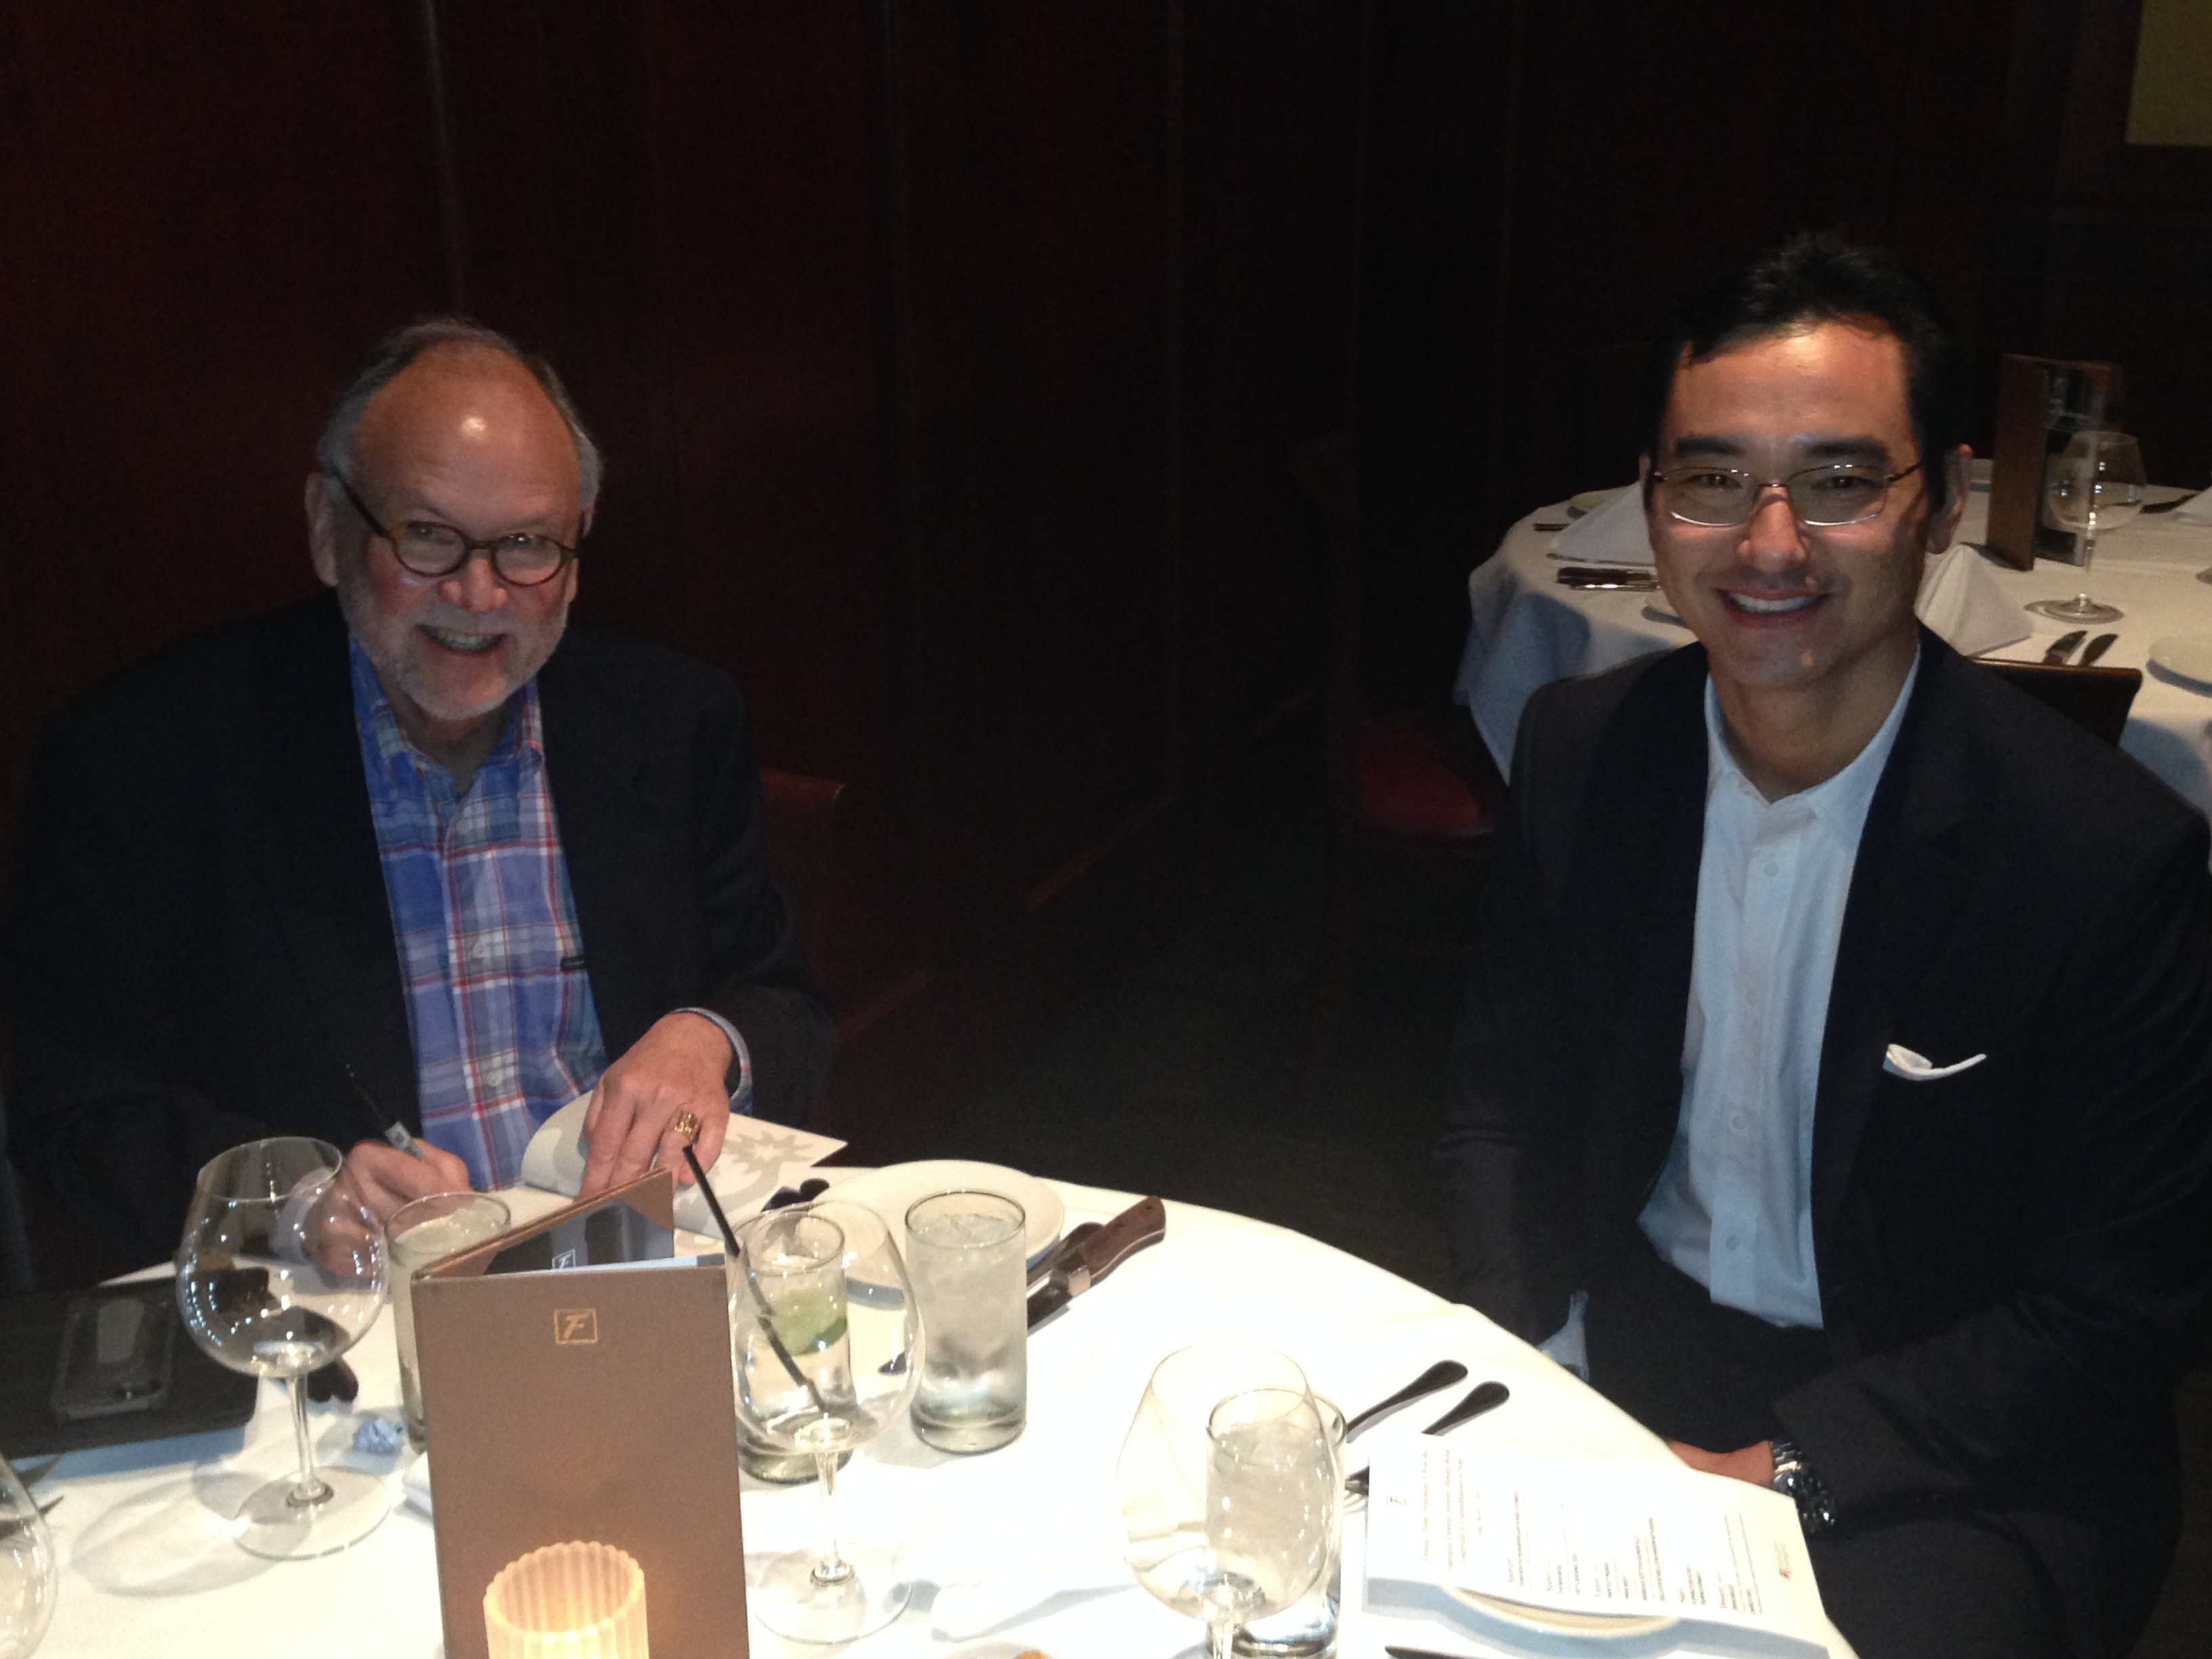 Starbucks and Scale - Reflections from Dinner with District Leaders and Howard Behar